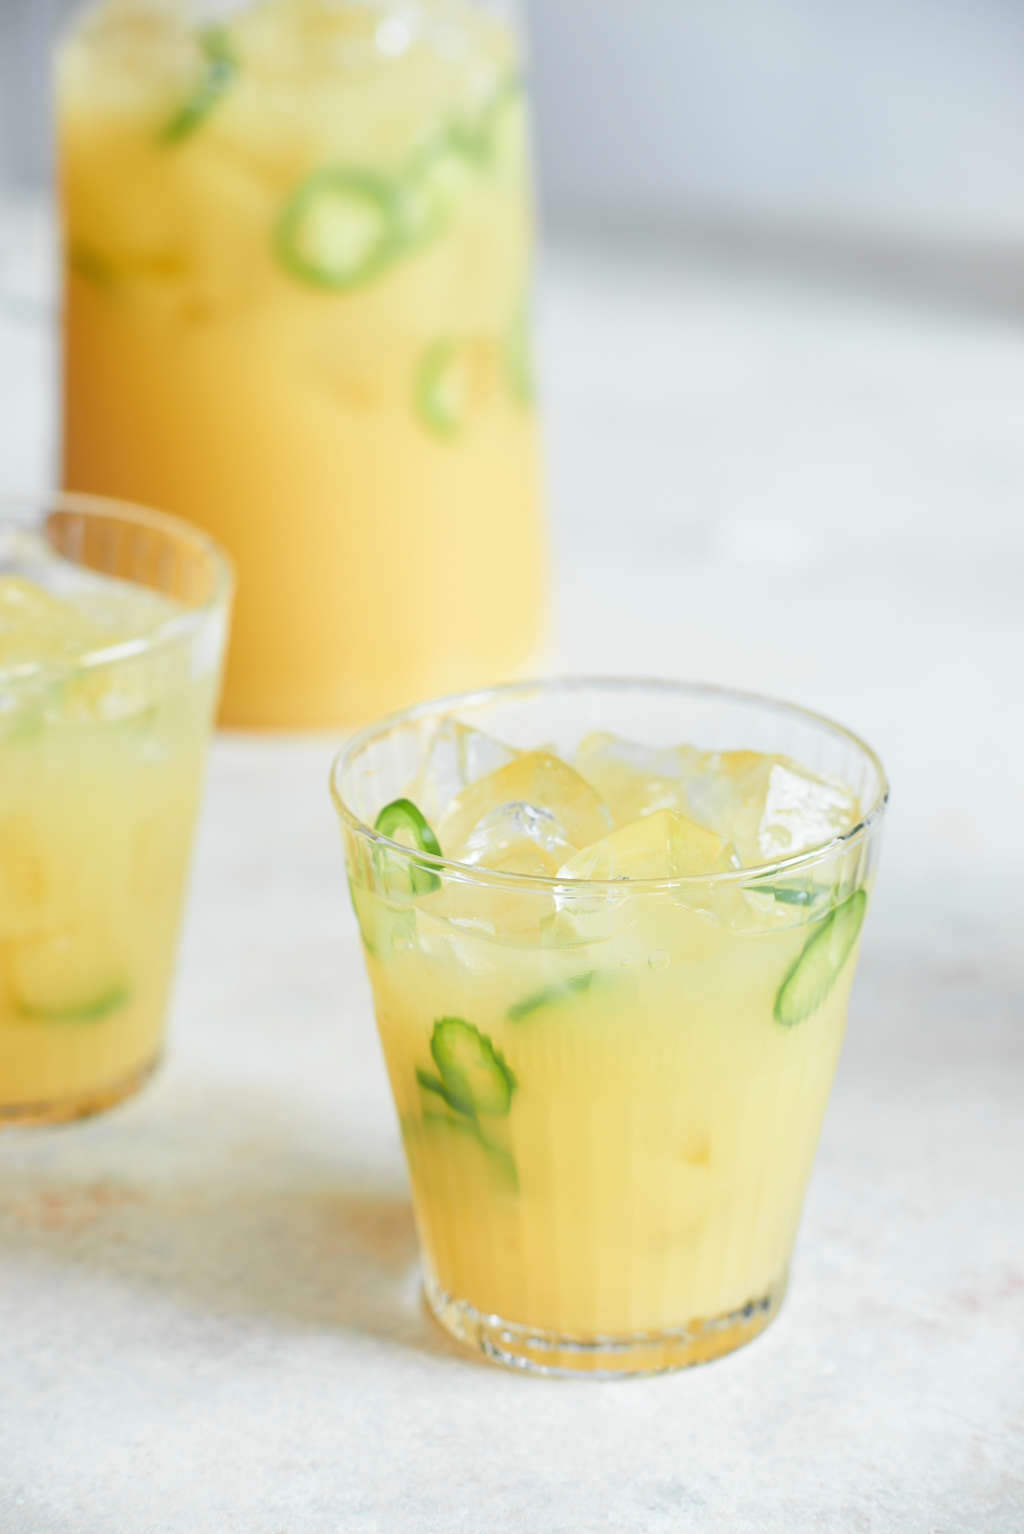 The Sweet & Spicy Punch That's Sure to Get the Party Started